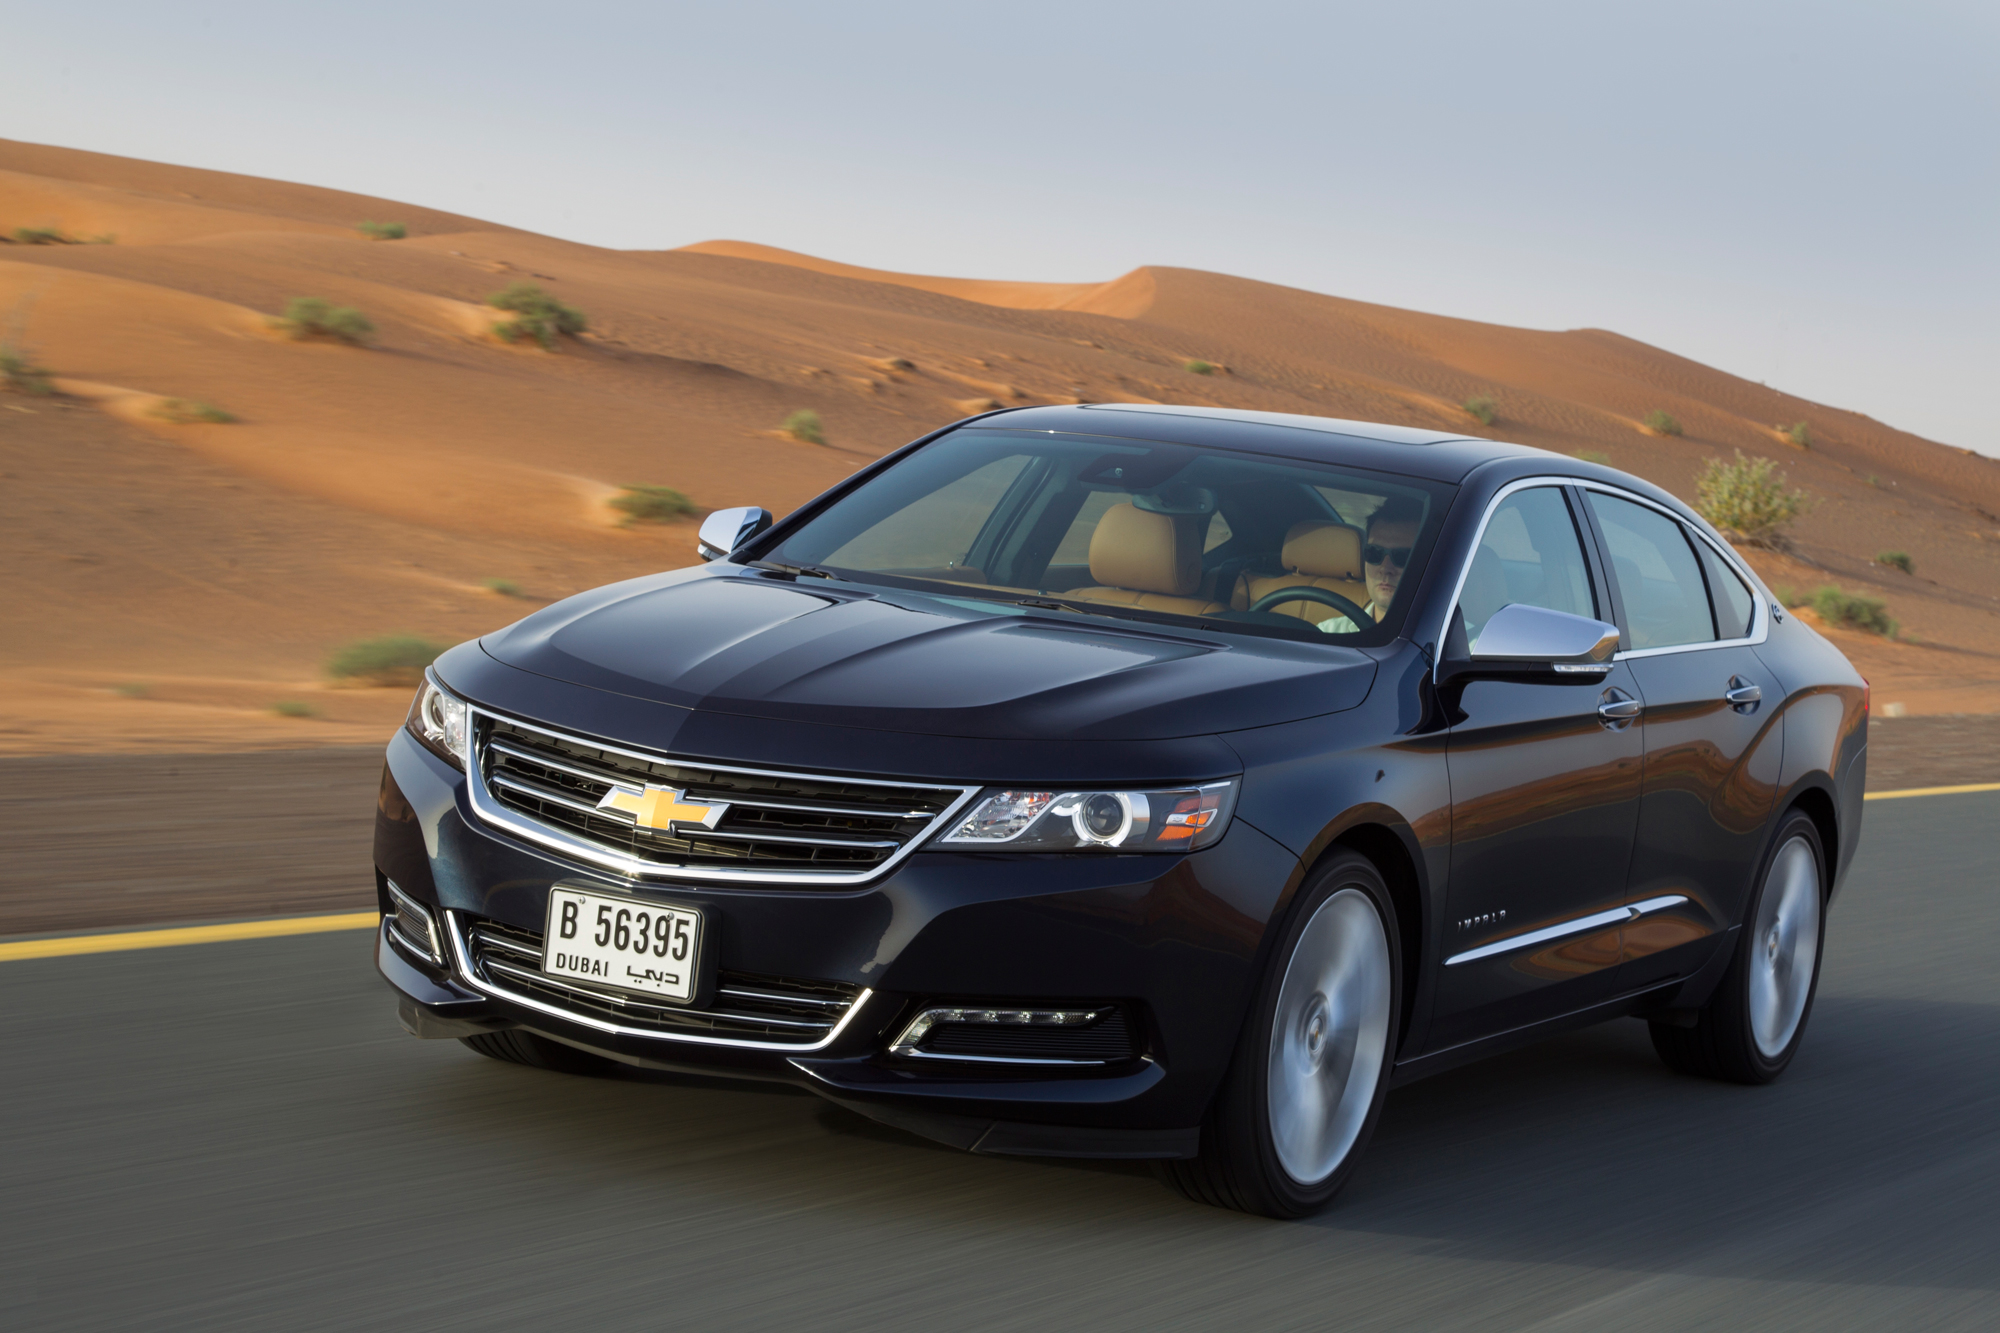 2014 chevrolet impala review motoring middle east car. Black Bedroom Furniture Sets. Home Design Ideas